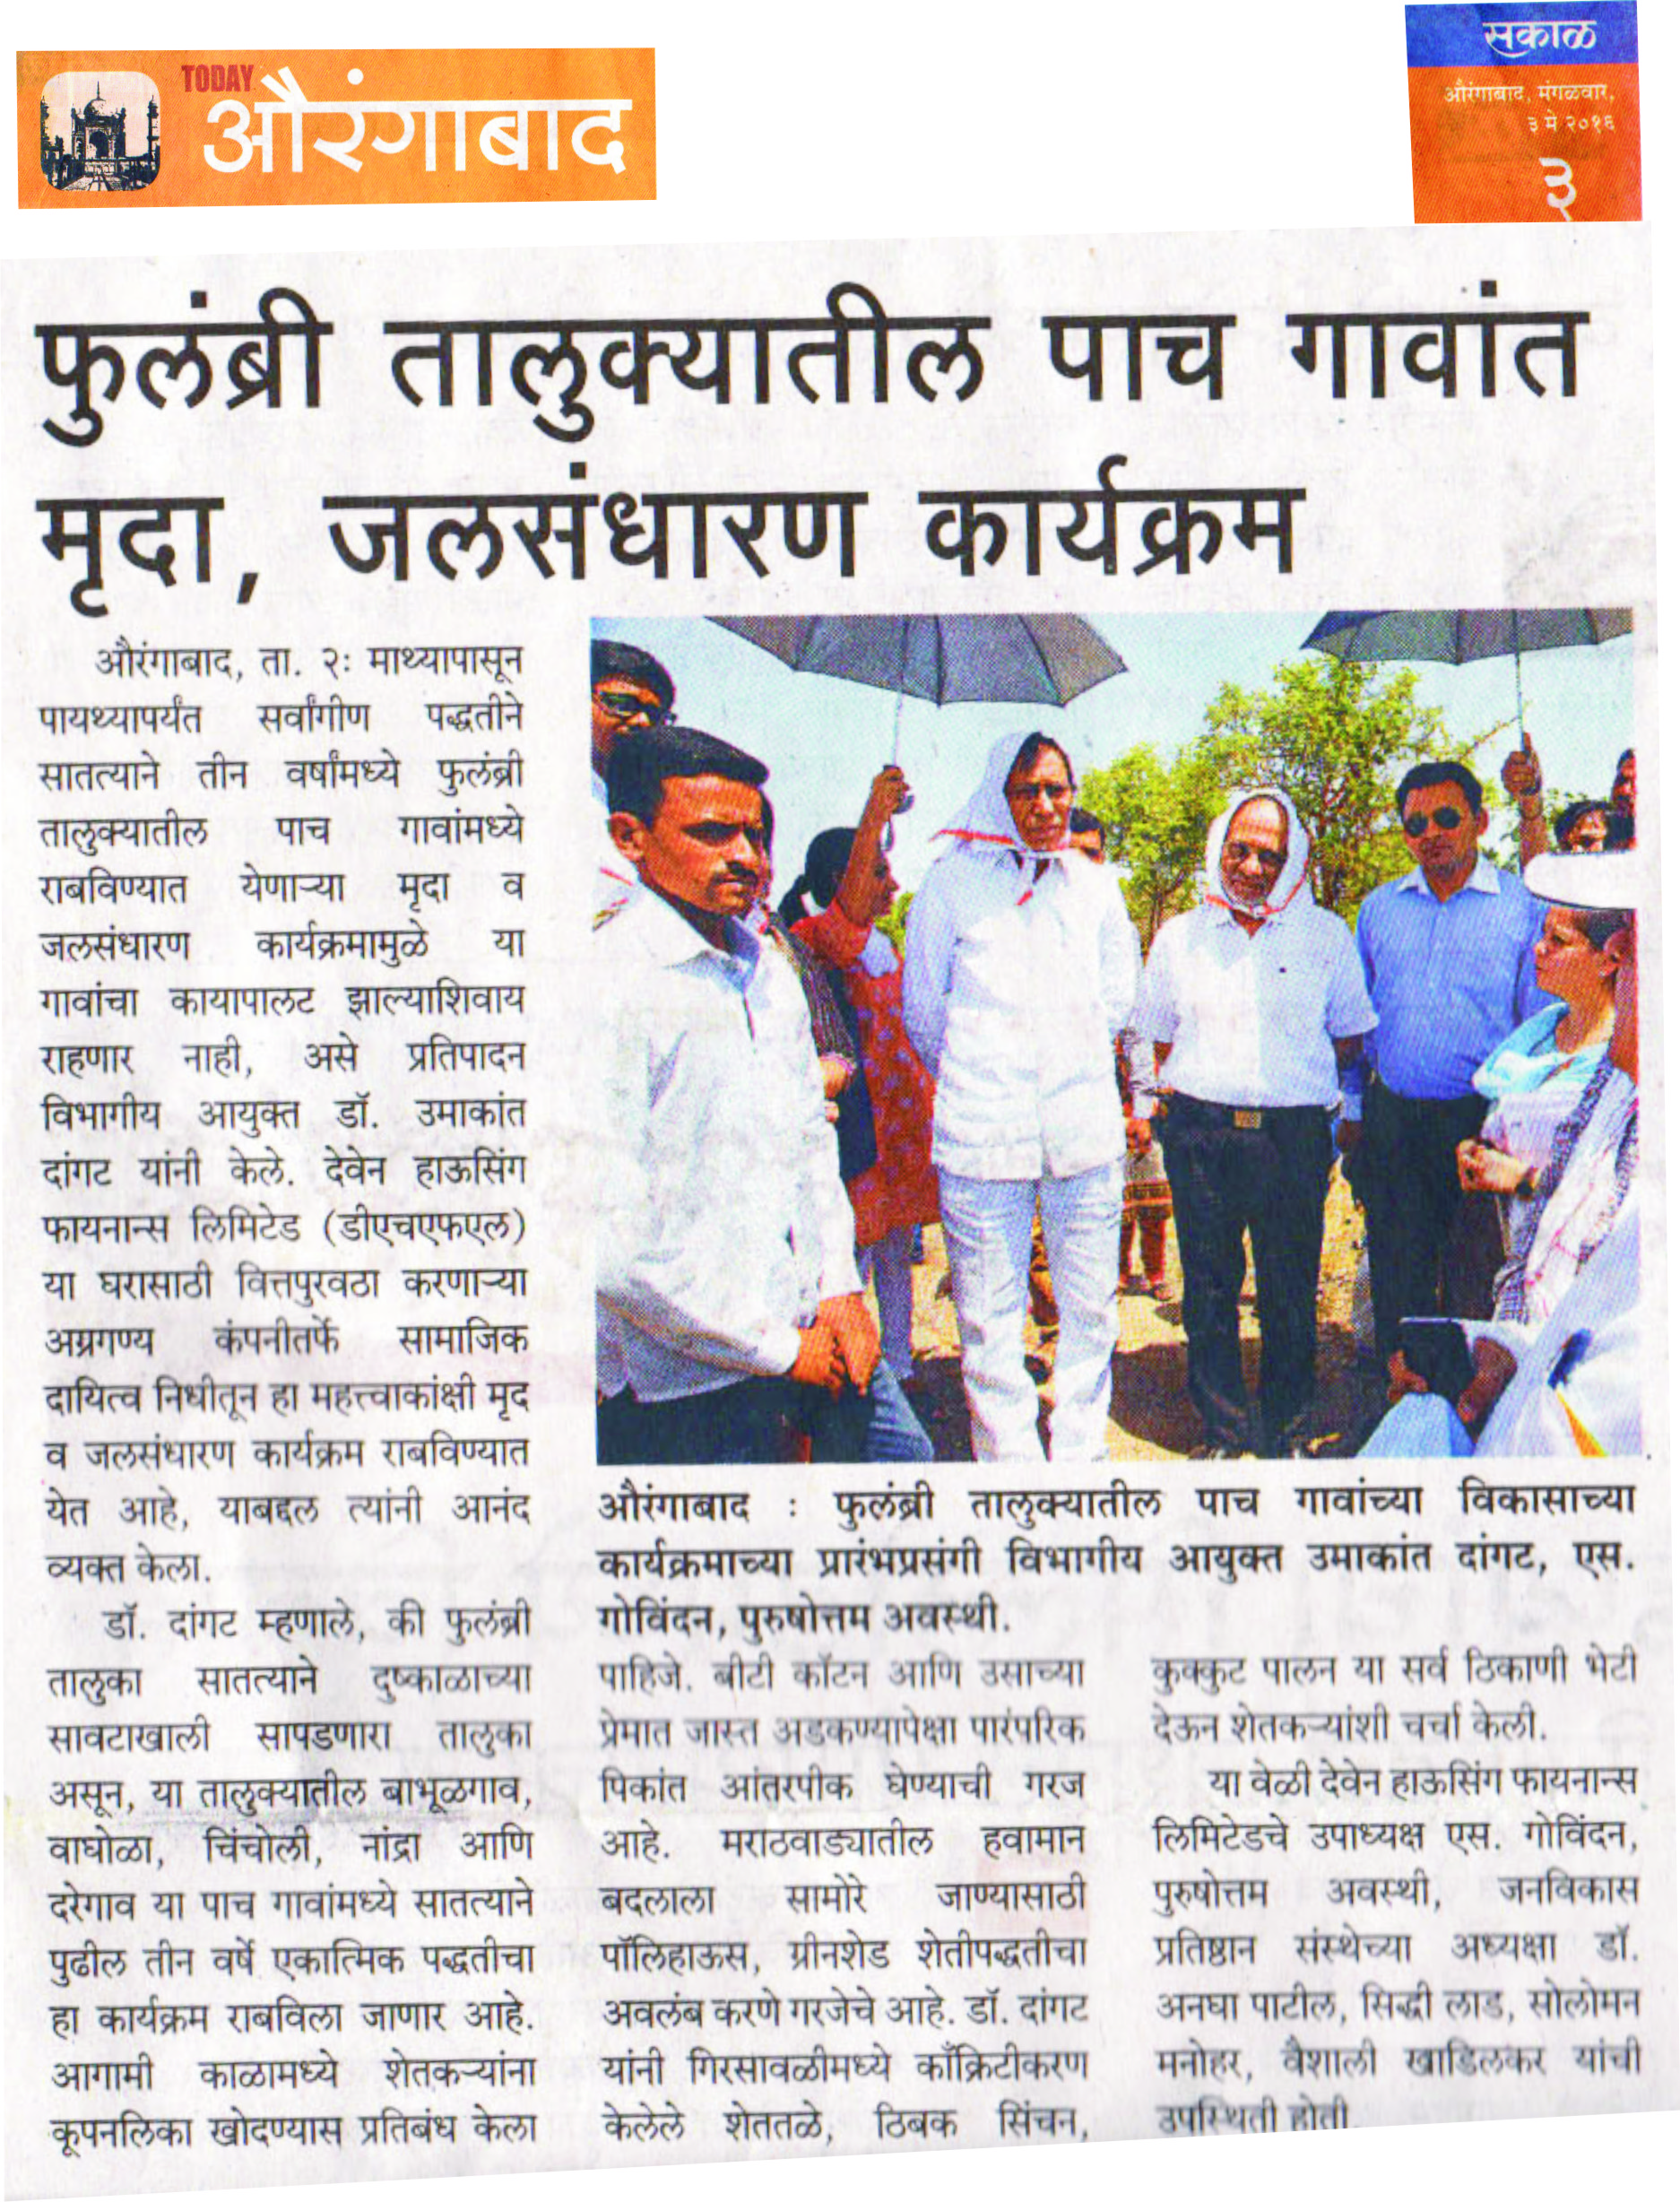 News - Sakal newspaper.jpg